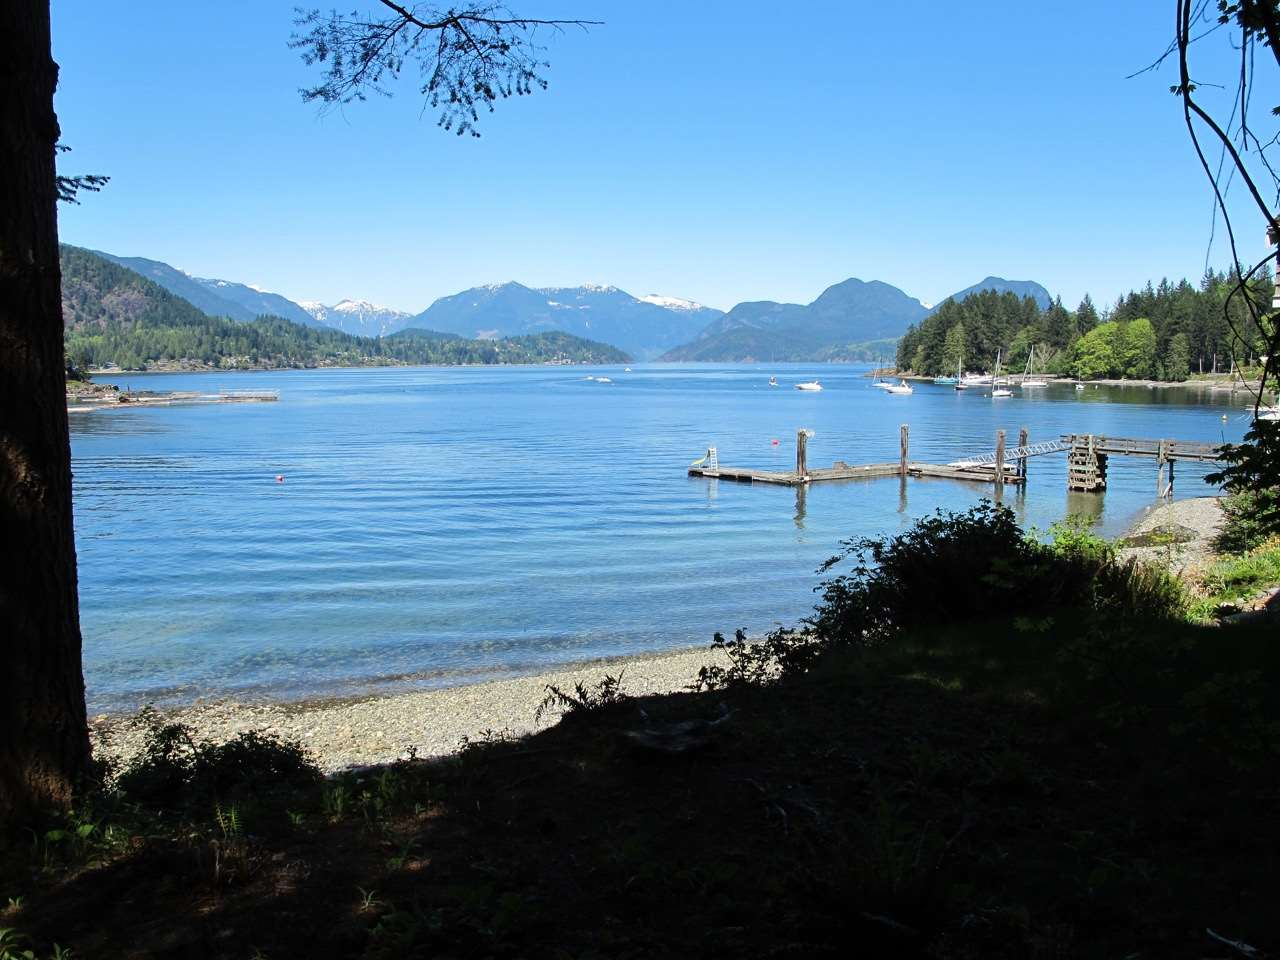 1.5 ACRES OF WATERFRONT! Gorgeous & exclusive rare opportunity to own a PRIVATE piece of waterfront in Plumpers Cove on Keats Island. 17 acres of common land included with private walking trails and roads cut. Private access to beach with superb NW views of Plumpers Cove + Gambier Island and local mountains. This property has a shared dock + tennis court & tons of privacy due to its size, location and positioning in the bay. Preliminary Plans and architectural drawings for spectacular large new home available with sale.